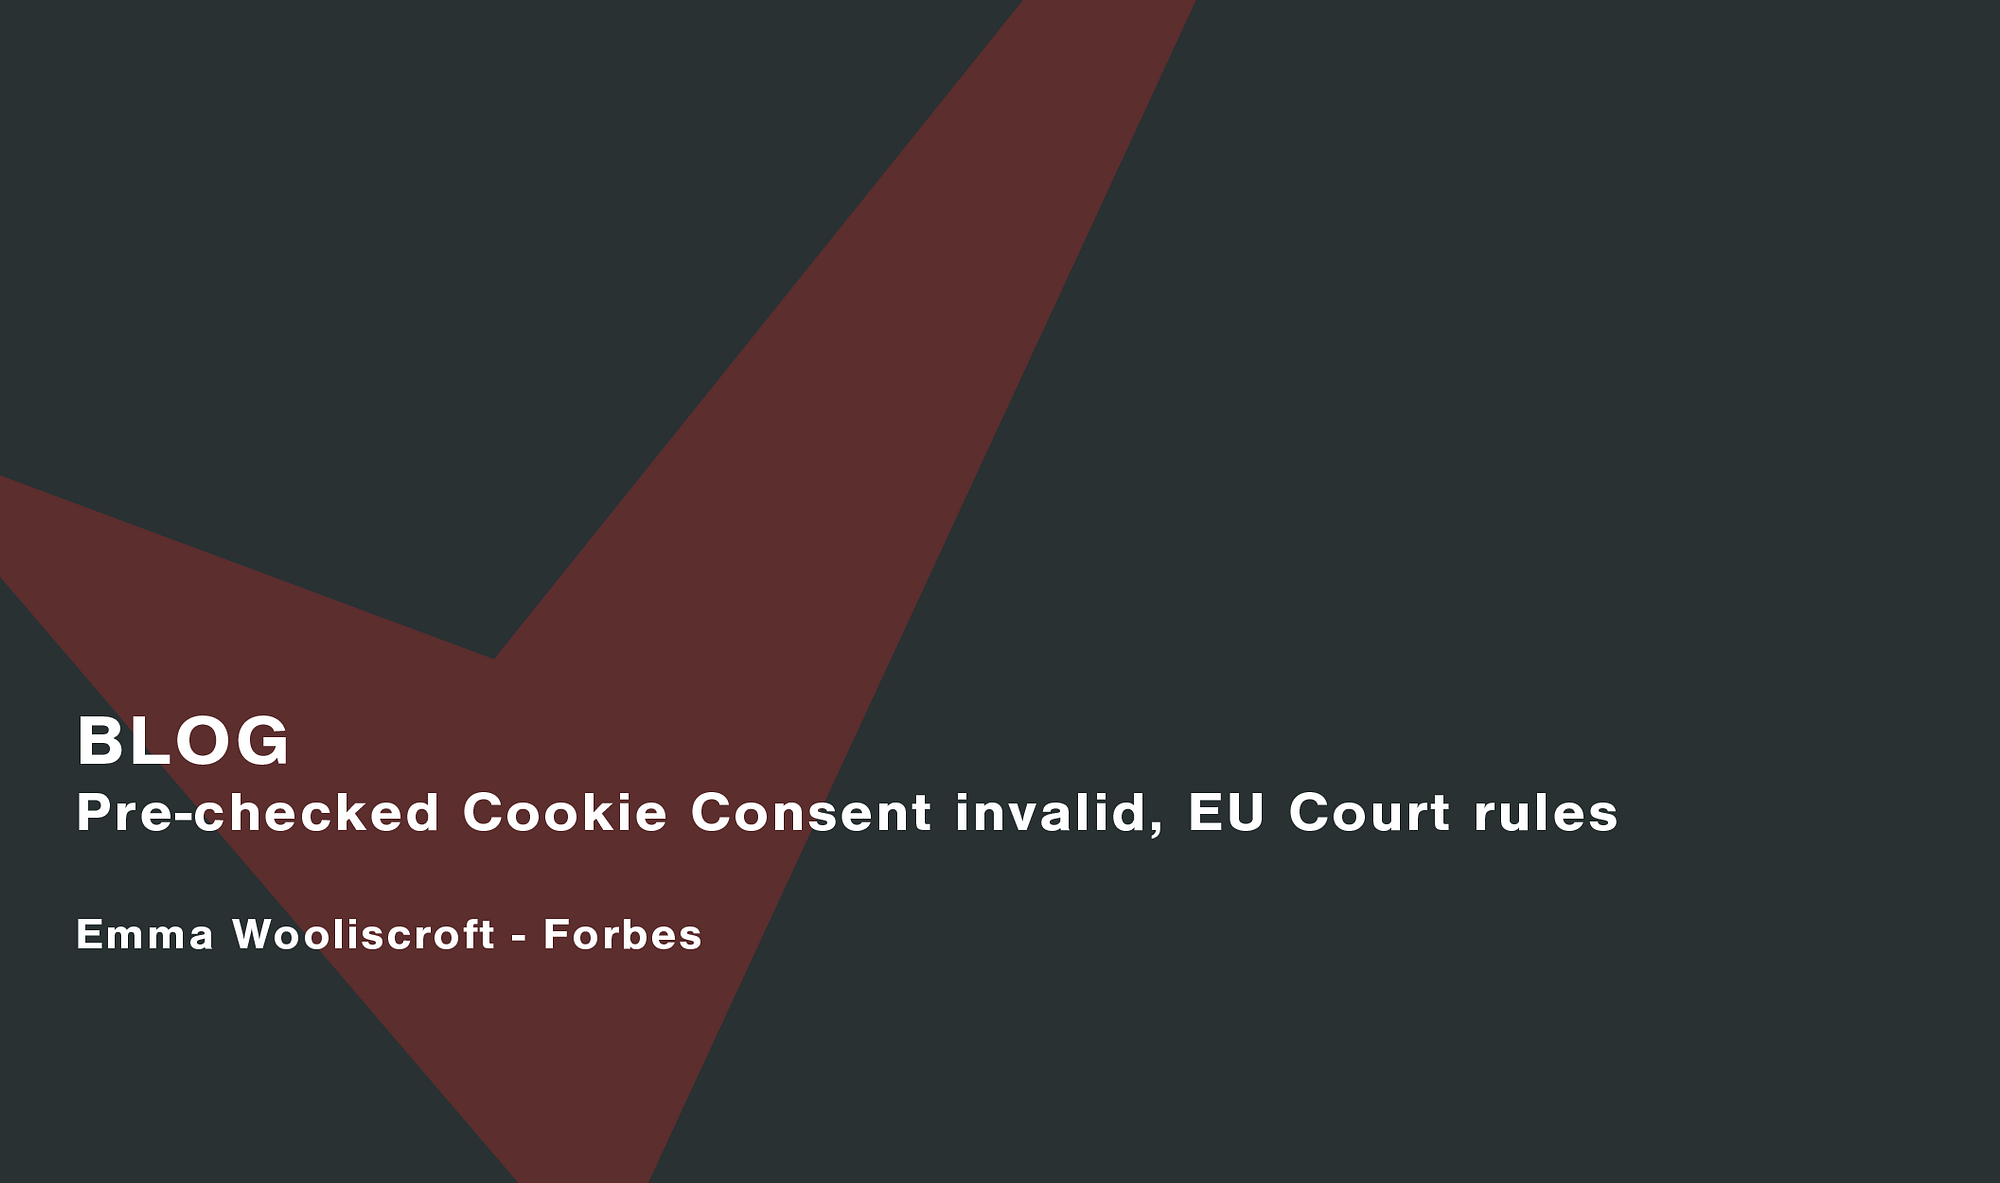 Pre-checked-Cookie-Consent-invalid-EU-Court-rules